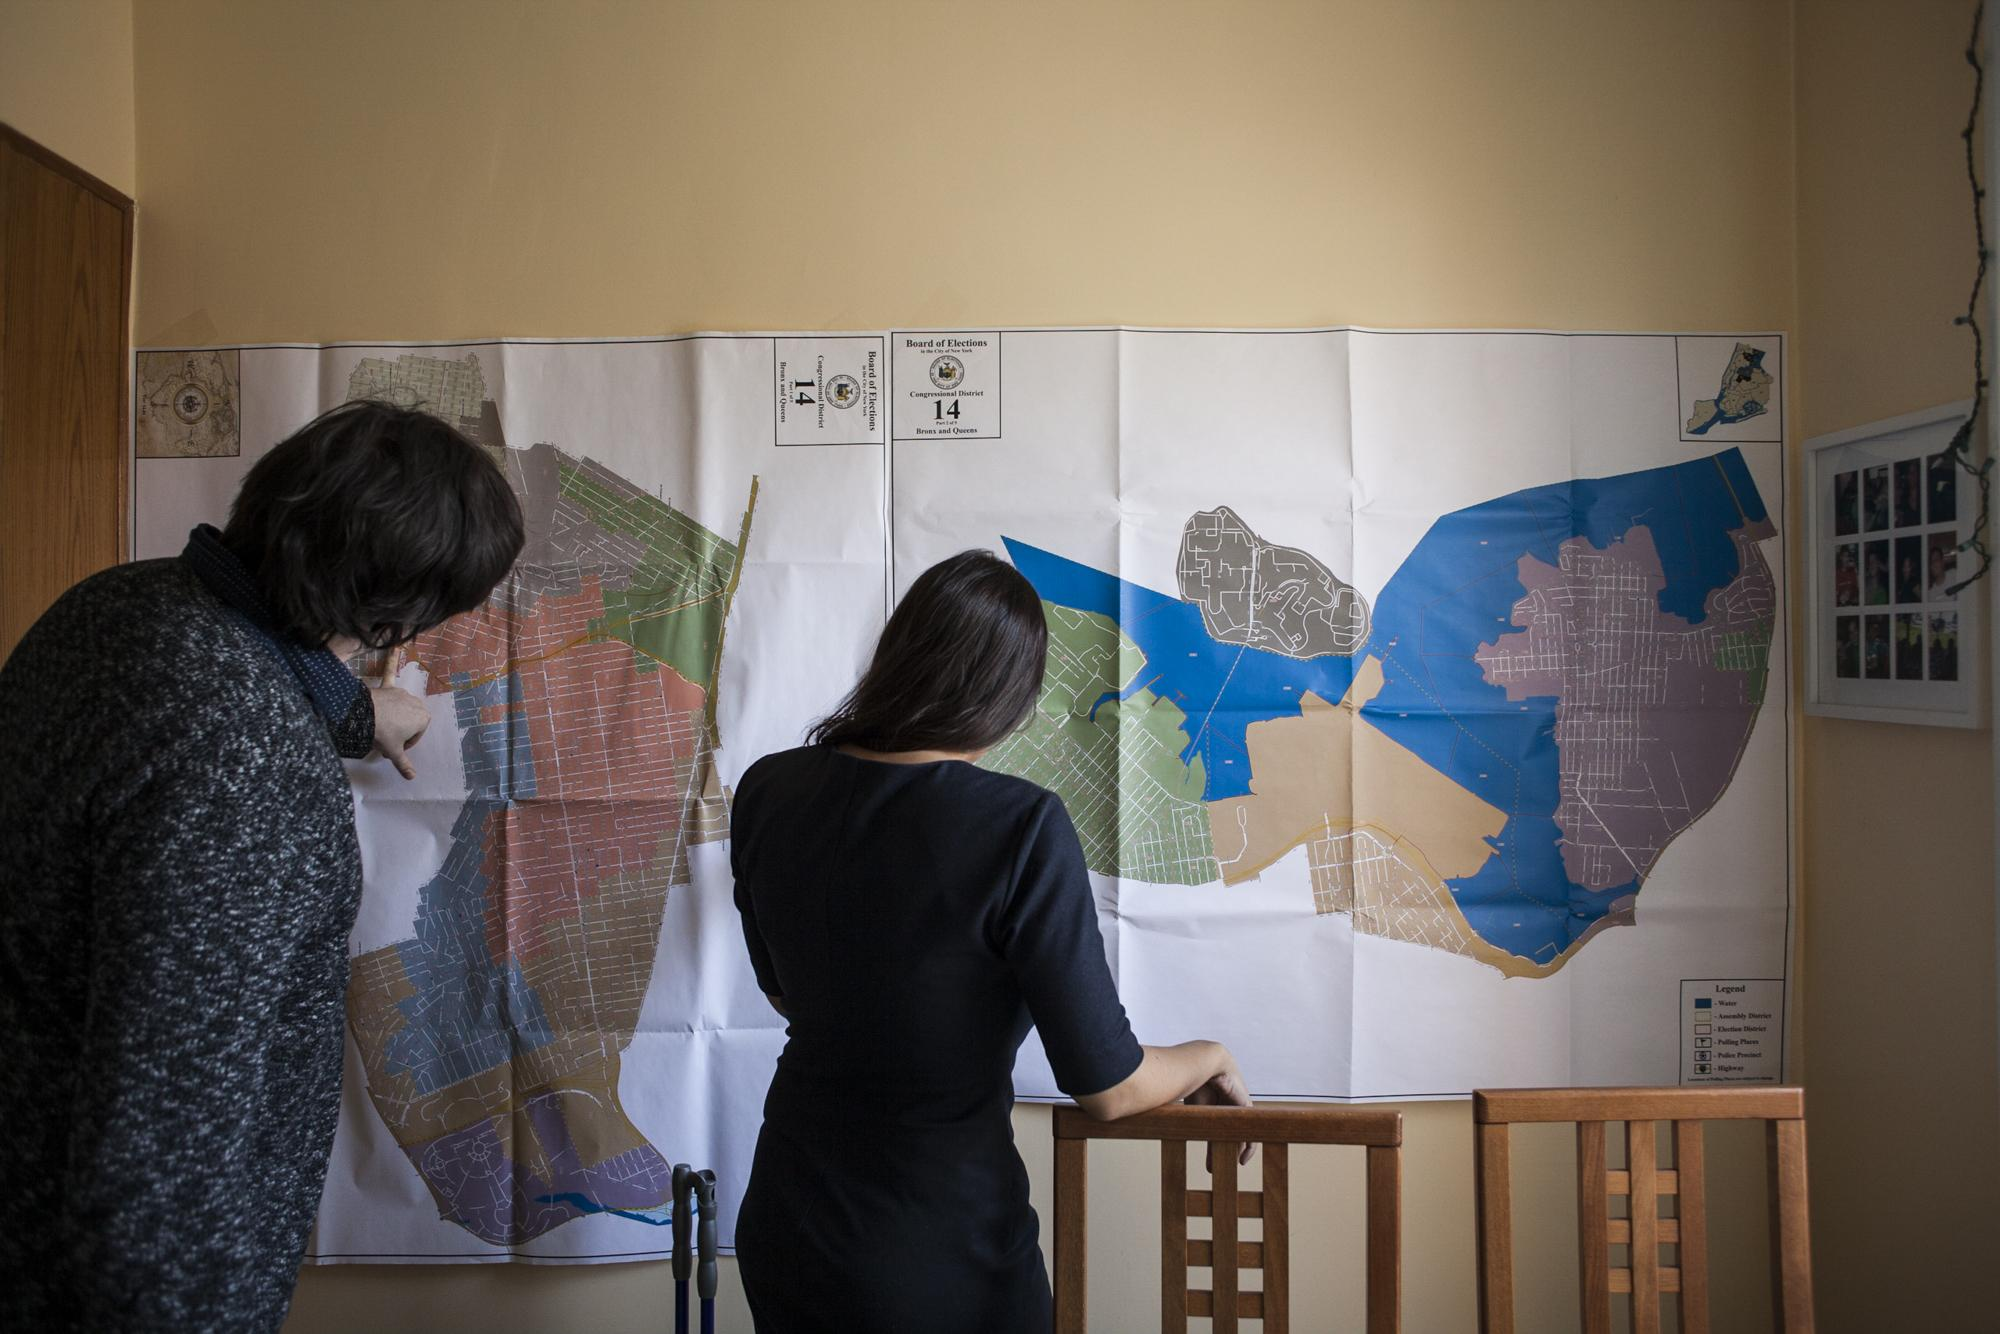 Alexandria and fundraising director for her campaign Michael Carter look over maps of district NY-14 before heading to an event at Lefrak City, in the Queens borough of New York City, April 7, 2018. The event was a discussion on how the community should move forward after the Board of Elections had filed an appeal to move the polling site in Lefrak City's continental room, a location in Lefrak City that has been the communities polling site for nearly 50 years.